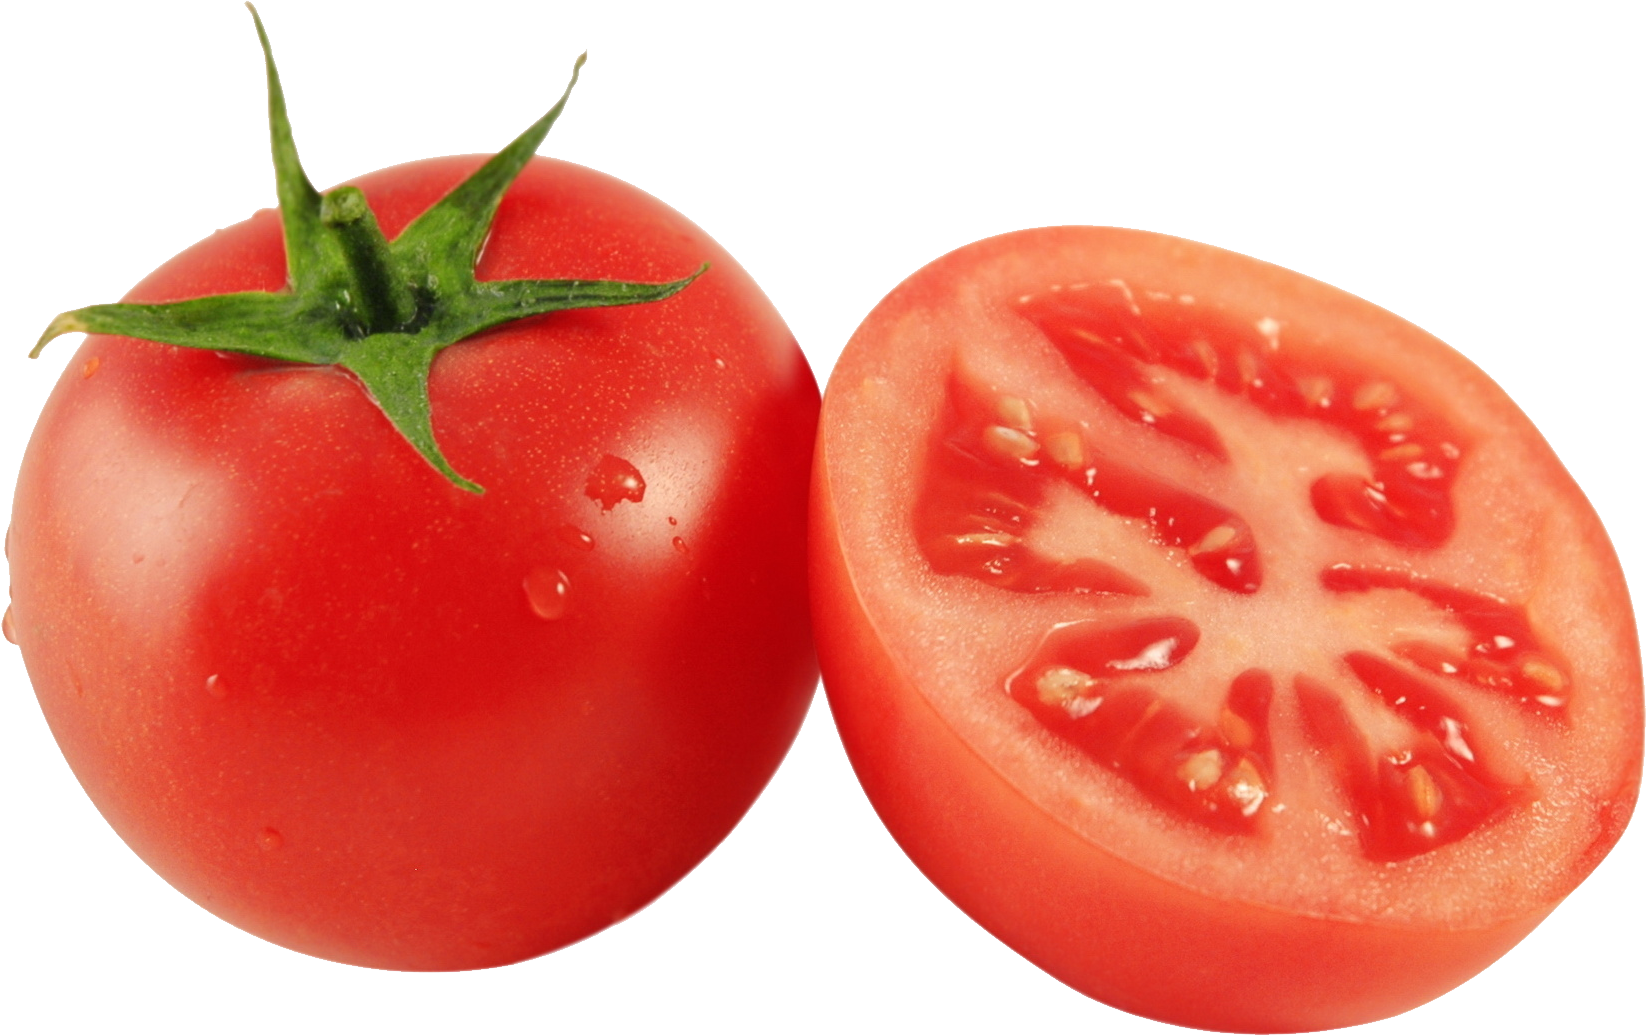 PNG Tomato - 57149